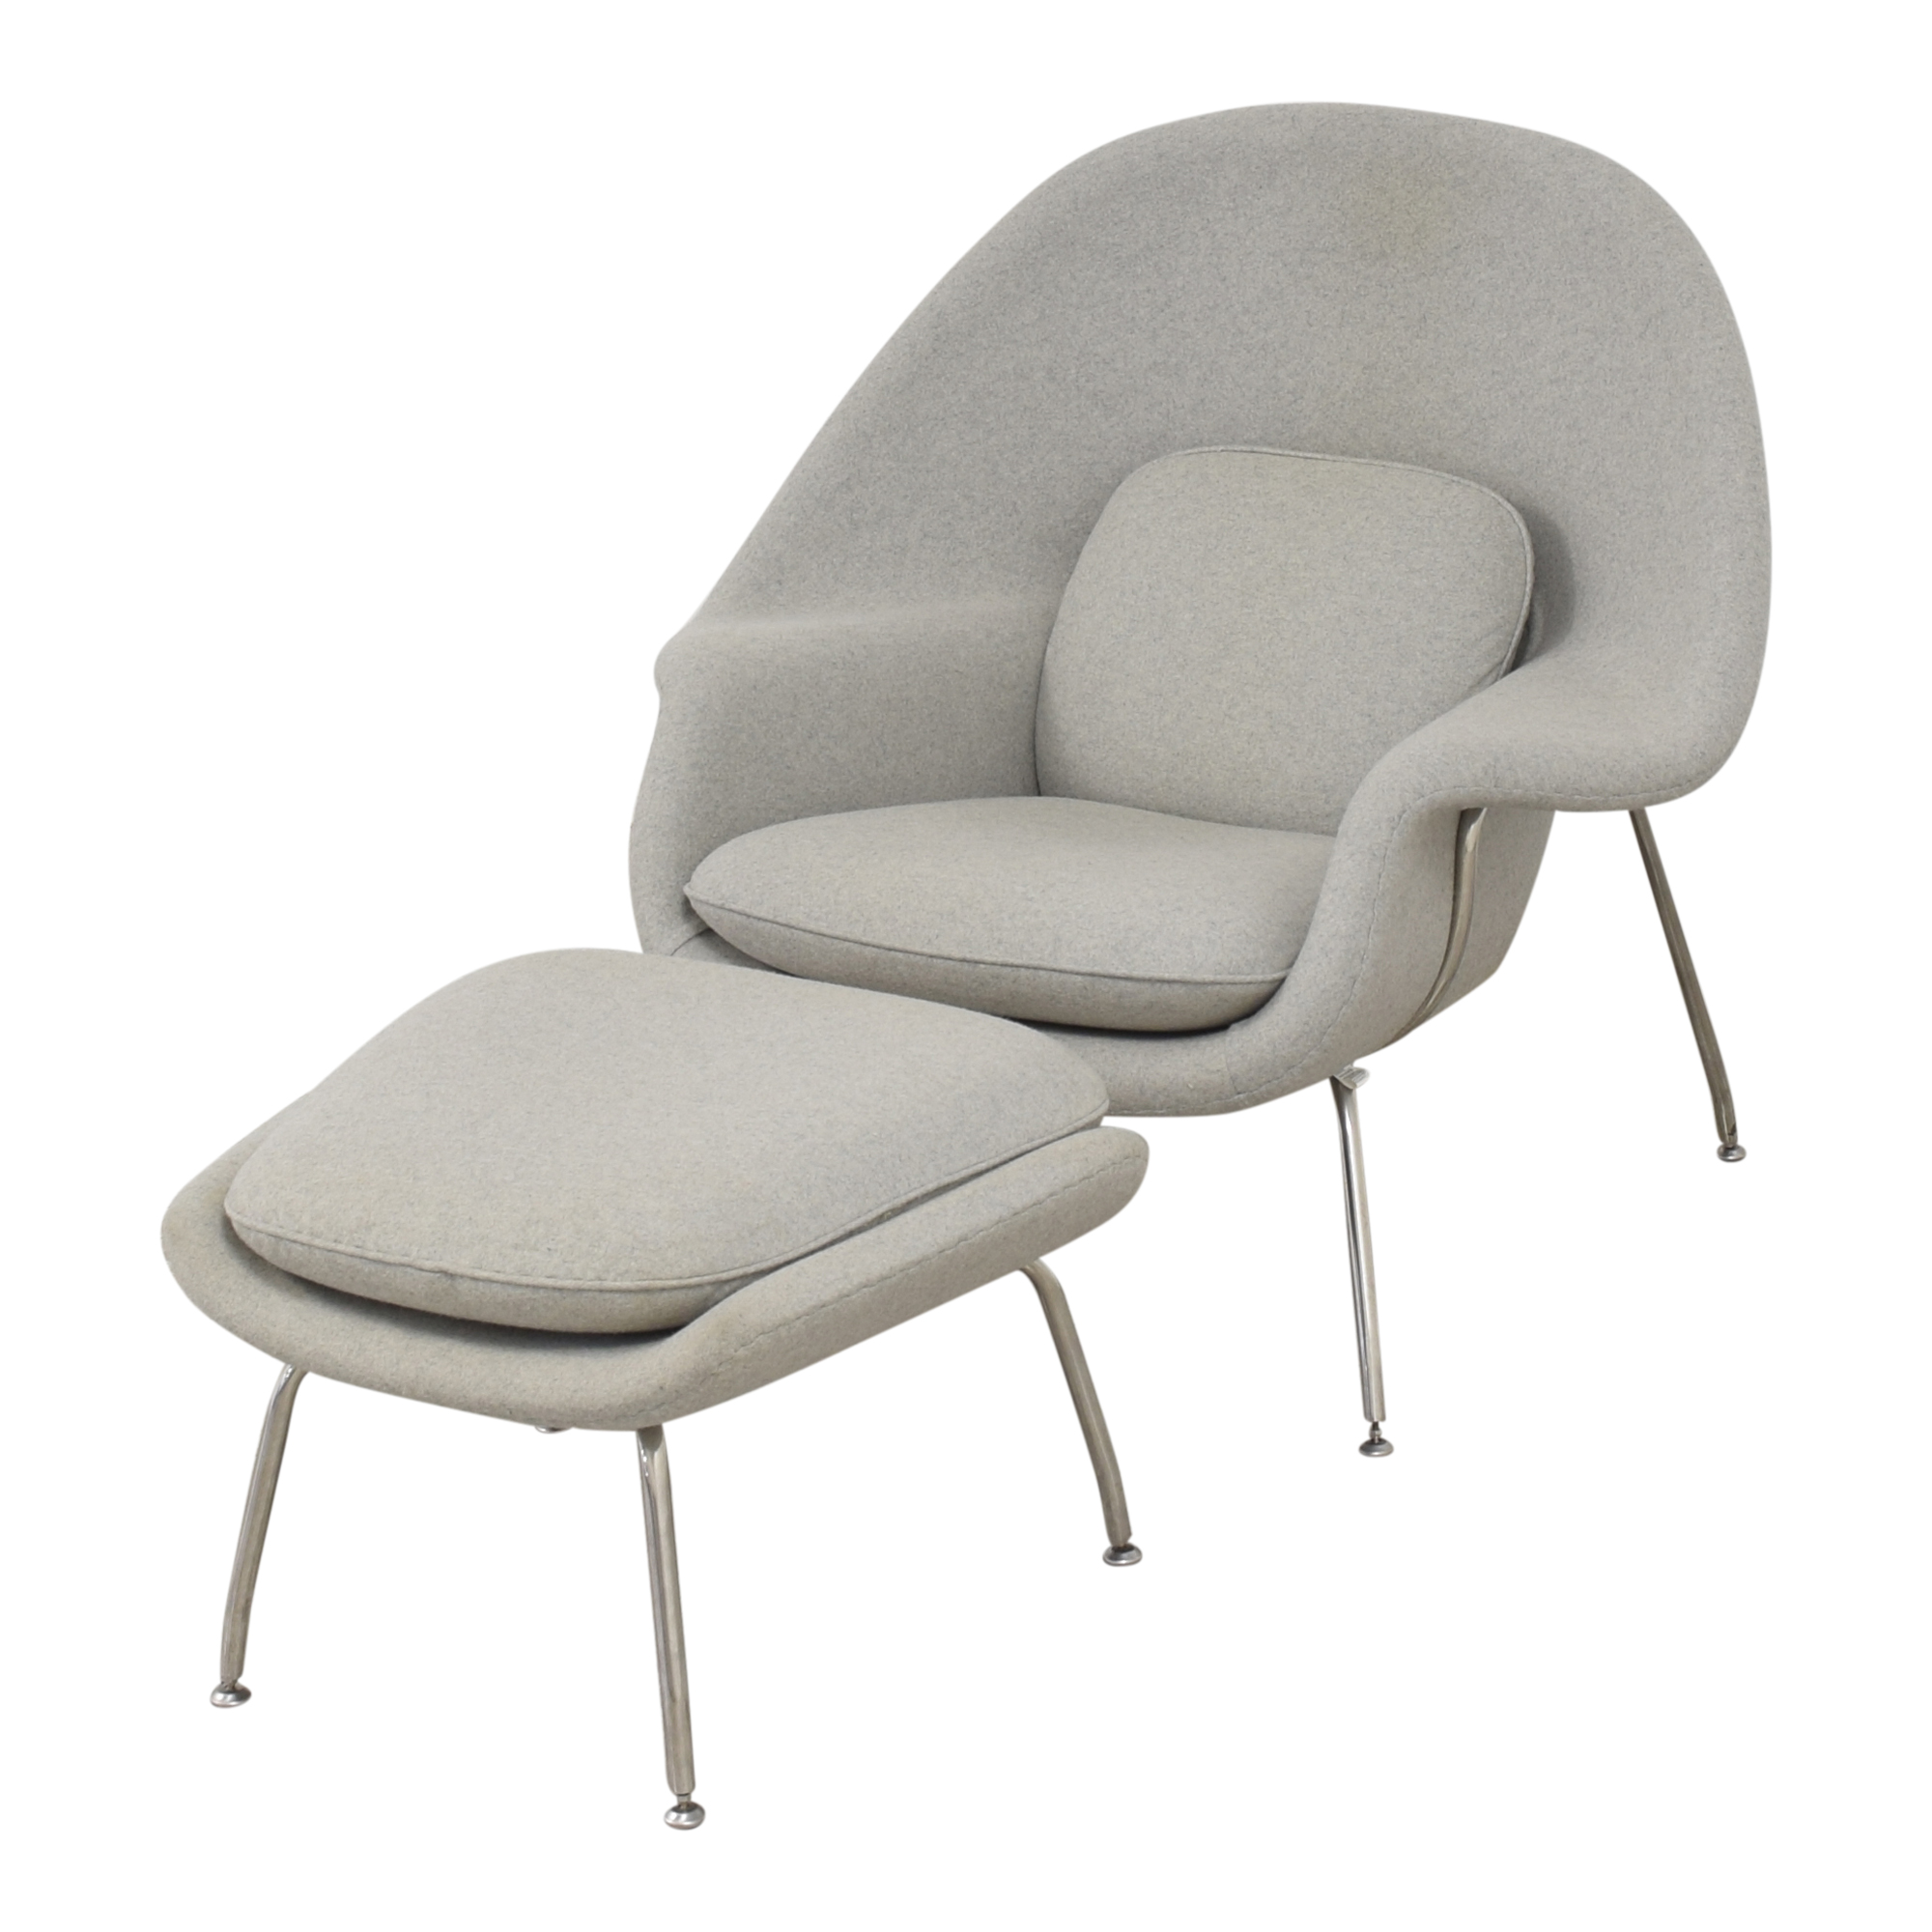 France and Son France and Son Womb Chair with Ottoman second hand